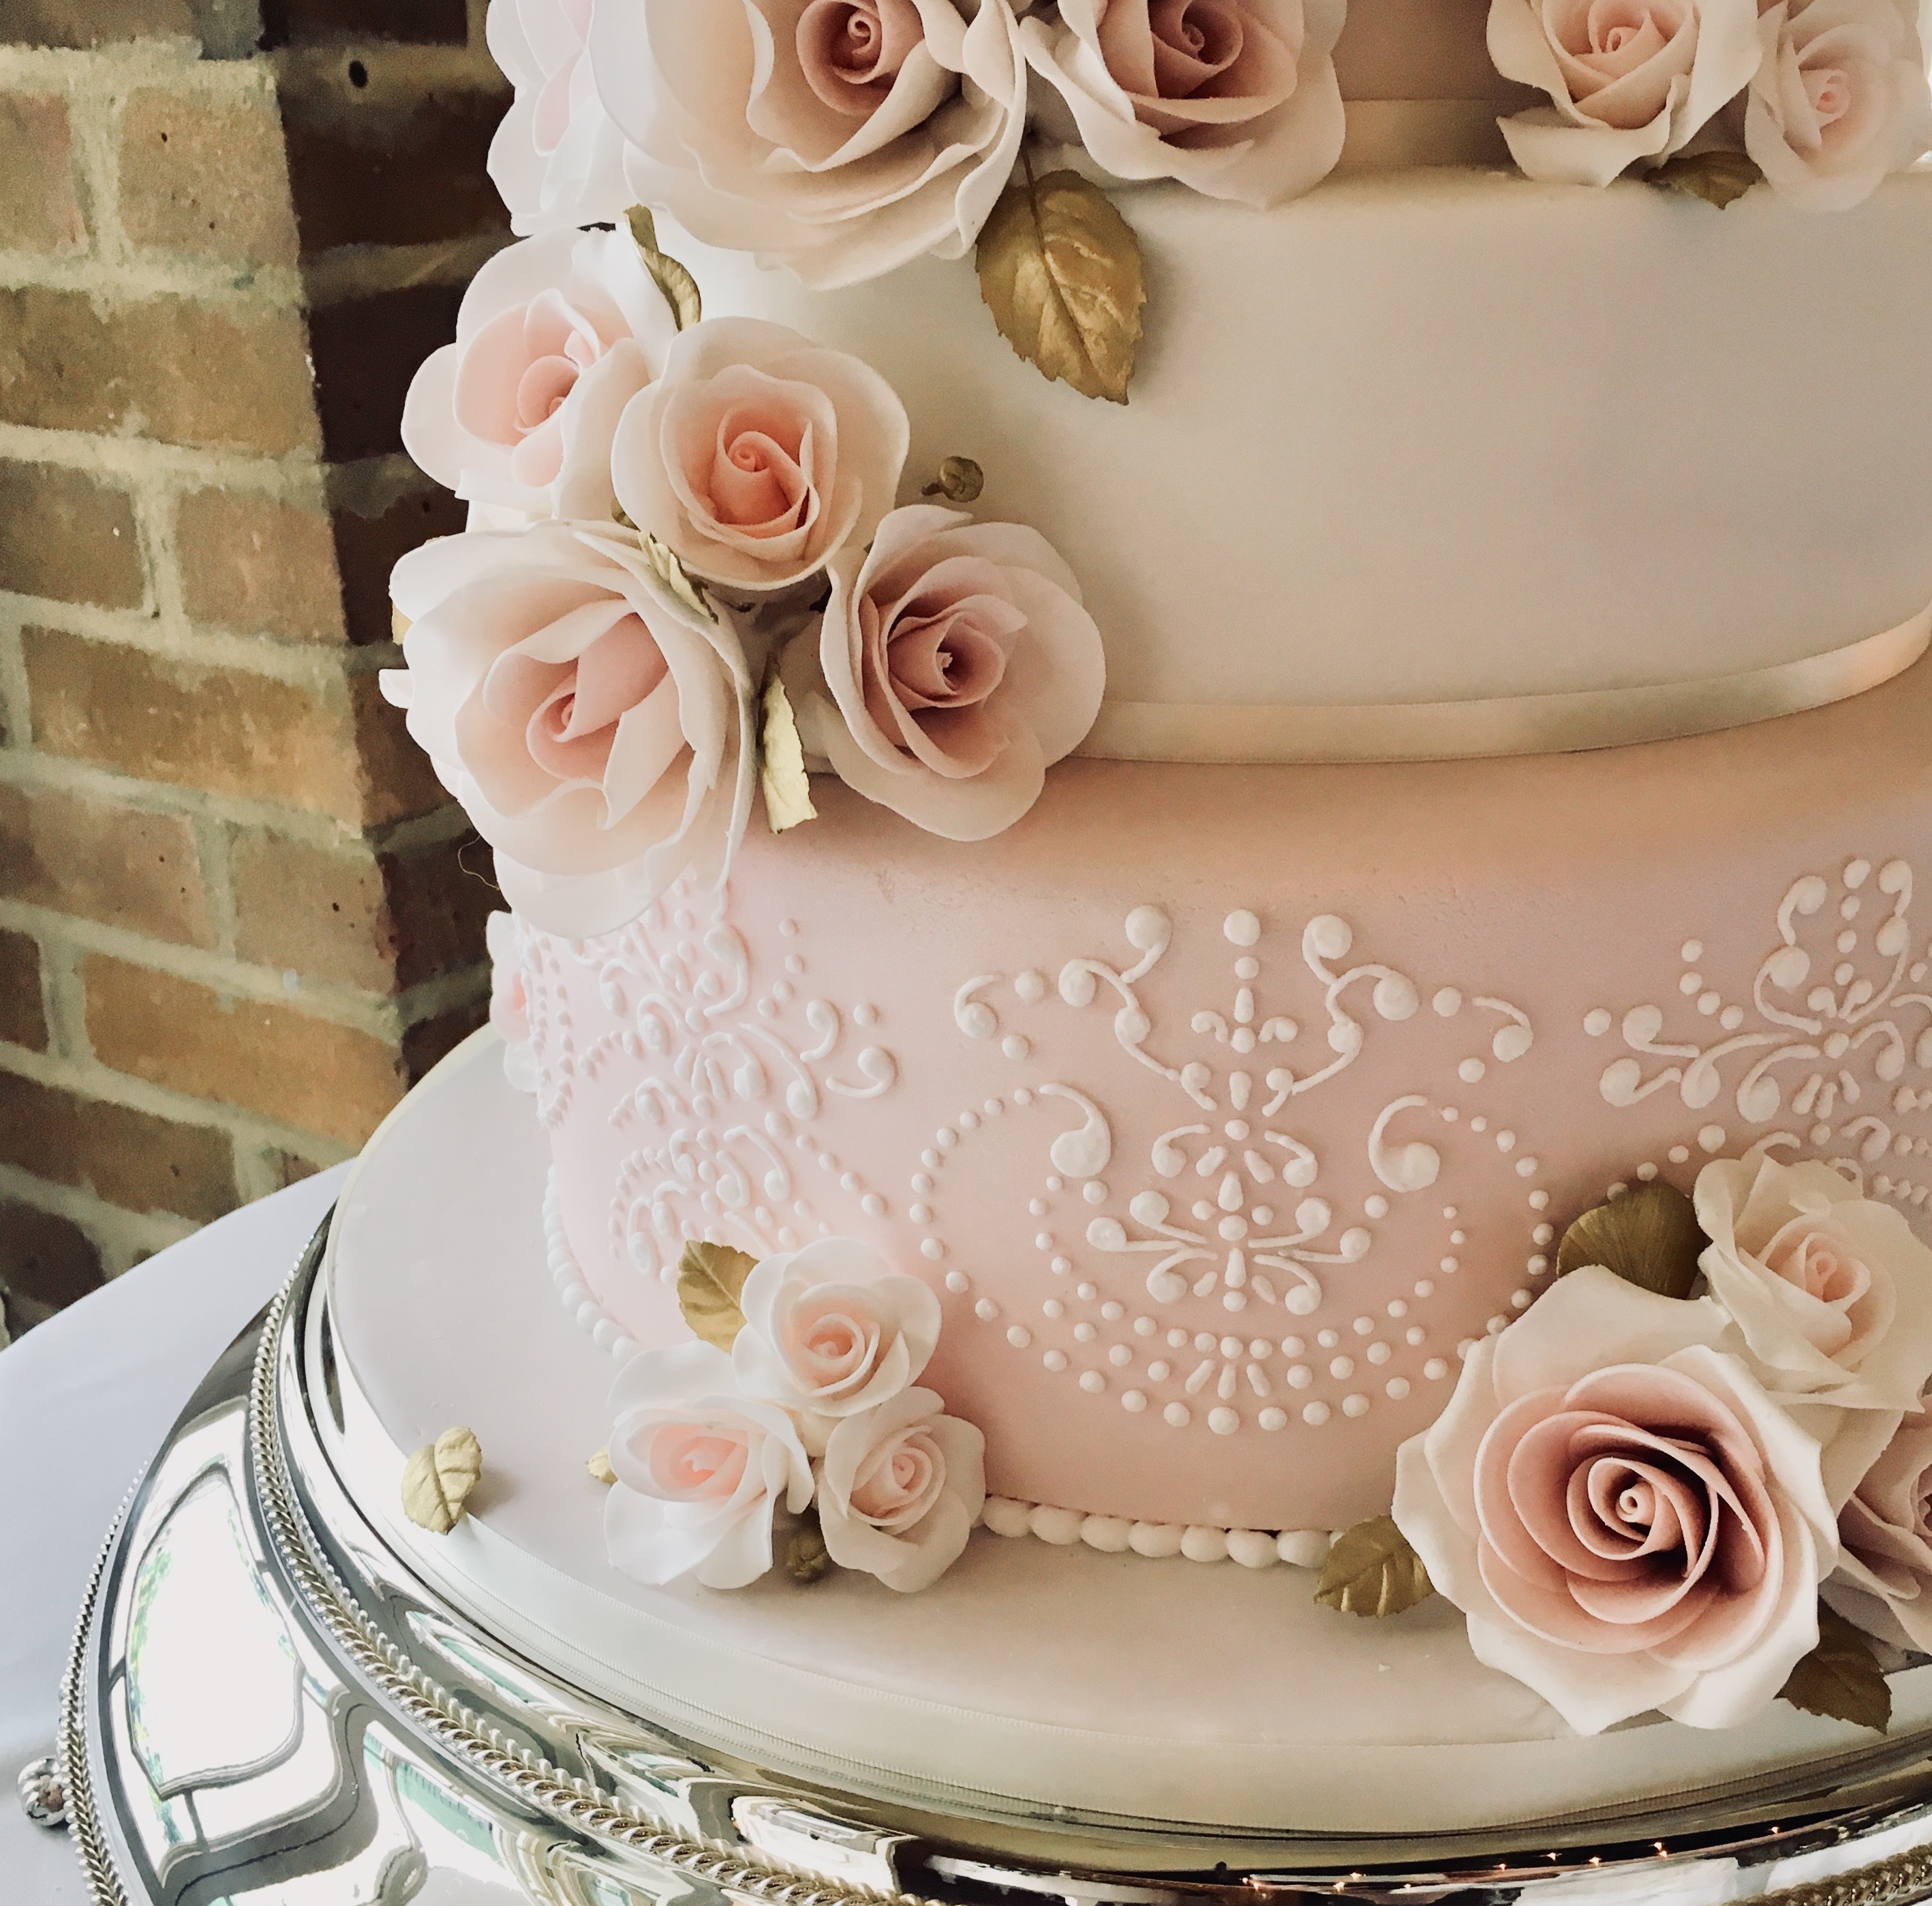 45 Wedding Cakes With Sugar Flowers That Look Stunningly: Essex Wedding Cakes